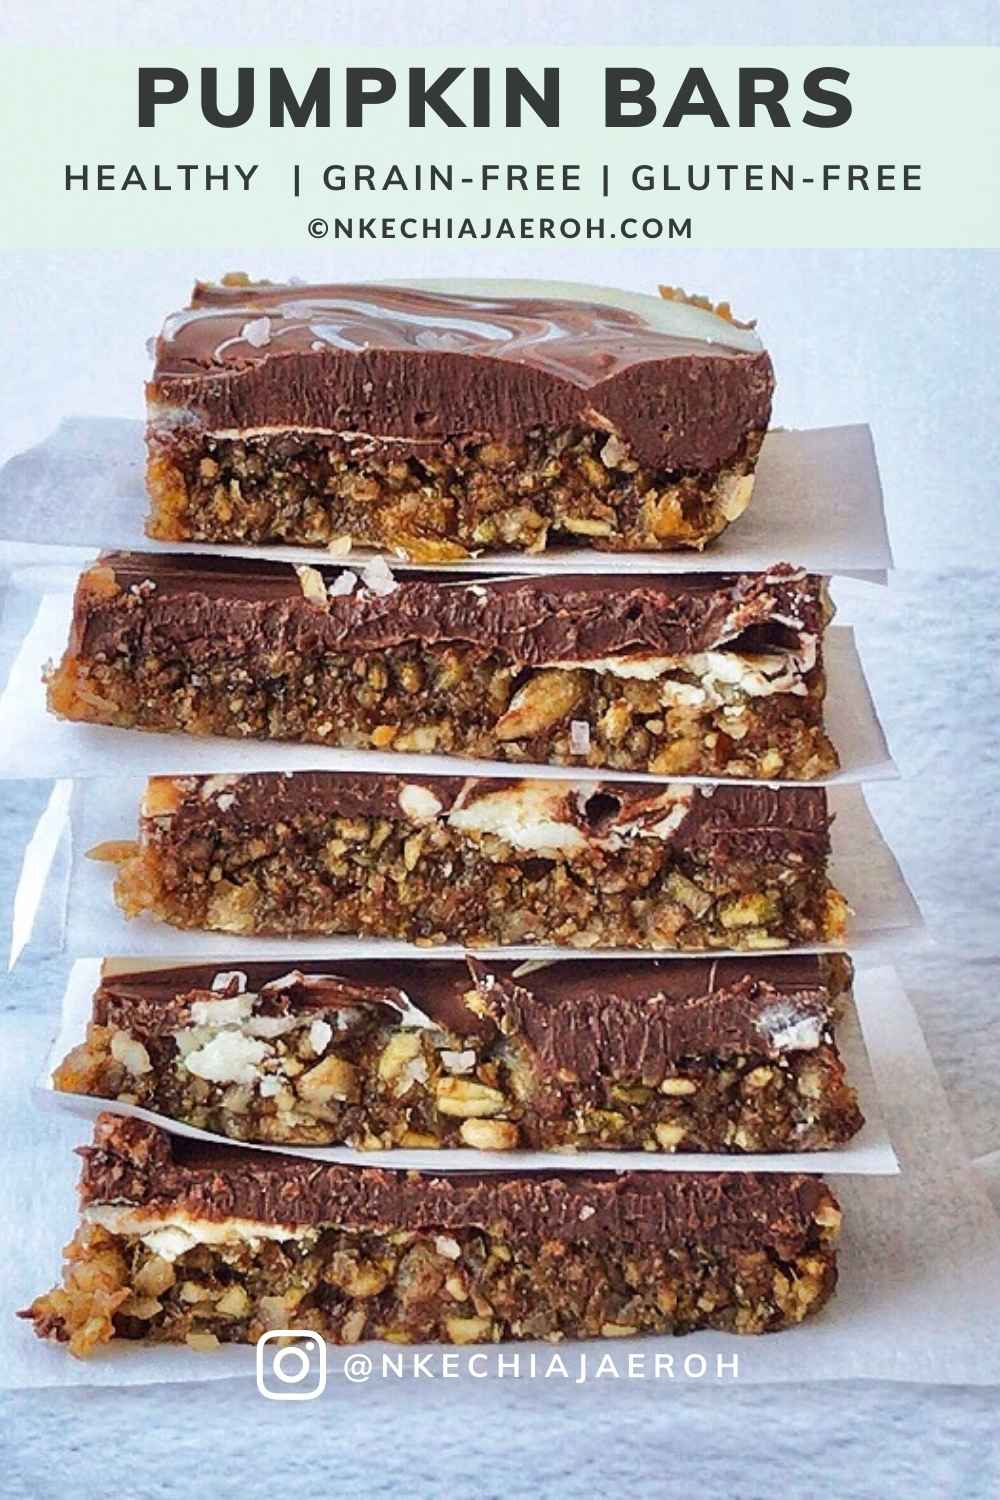 These healthy pumpkin bars made with pumpkin seeds, sunflower seeds, coconut flakes, dates, pink salt, and then topped with a chocolate swirl will make your day. These bars are gluten-free, grain-free, and refined sugar-free, as well as a no-bake! Make sure to make these pumpkin bars during thanksgiving and other occasions! Serve pumpkin (seed) bars as healthy snacks, dessert; make a lot, and freeze the remaining. #Pumpkin #Pumpkinbars #pumpkinseeds #sugarfree #grainfree #glutenfree #pumpkinrecipes